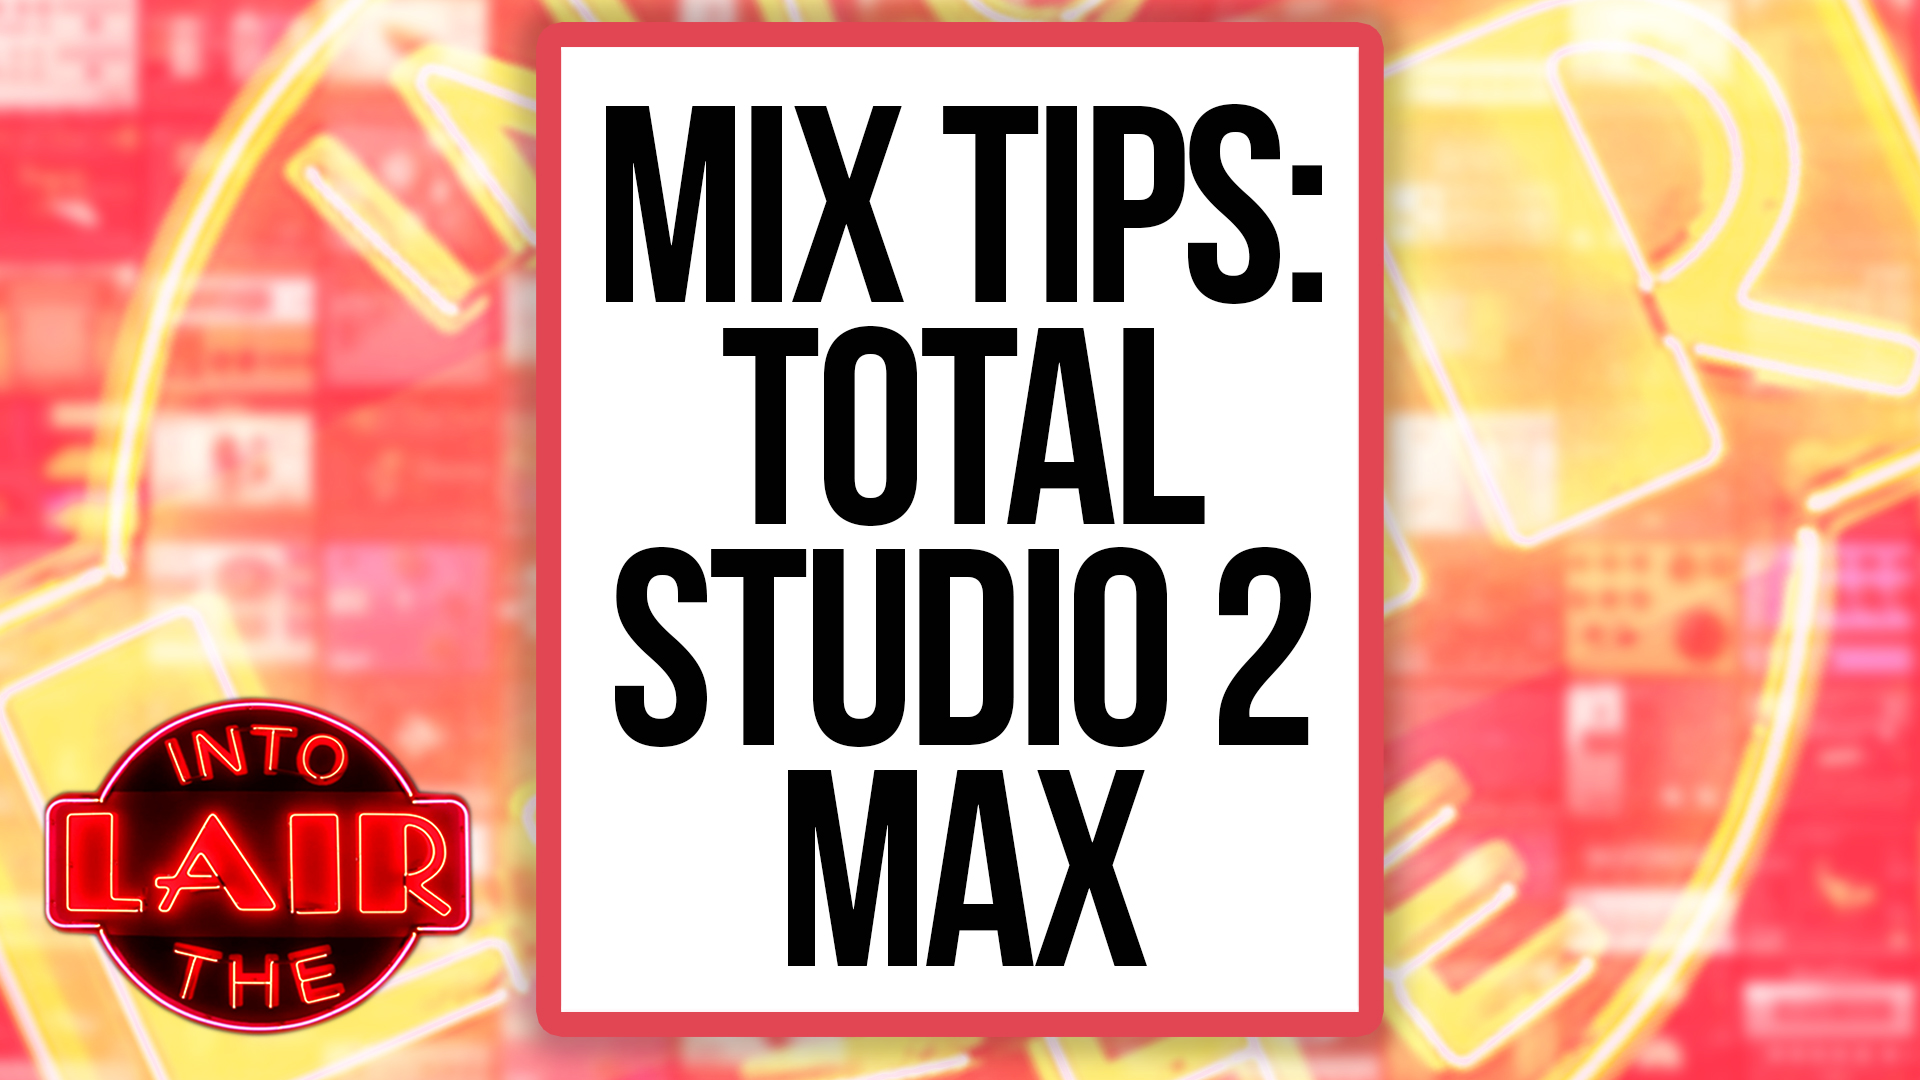 Mix Tips: Total Studio 2 Max